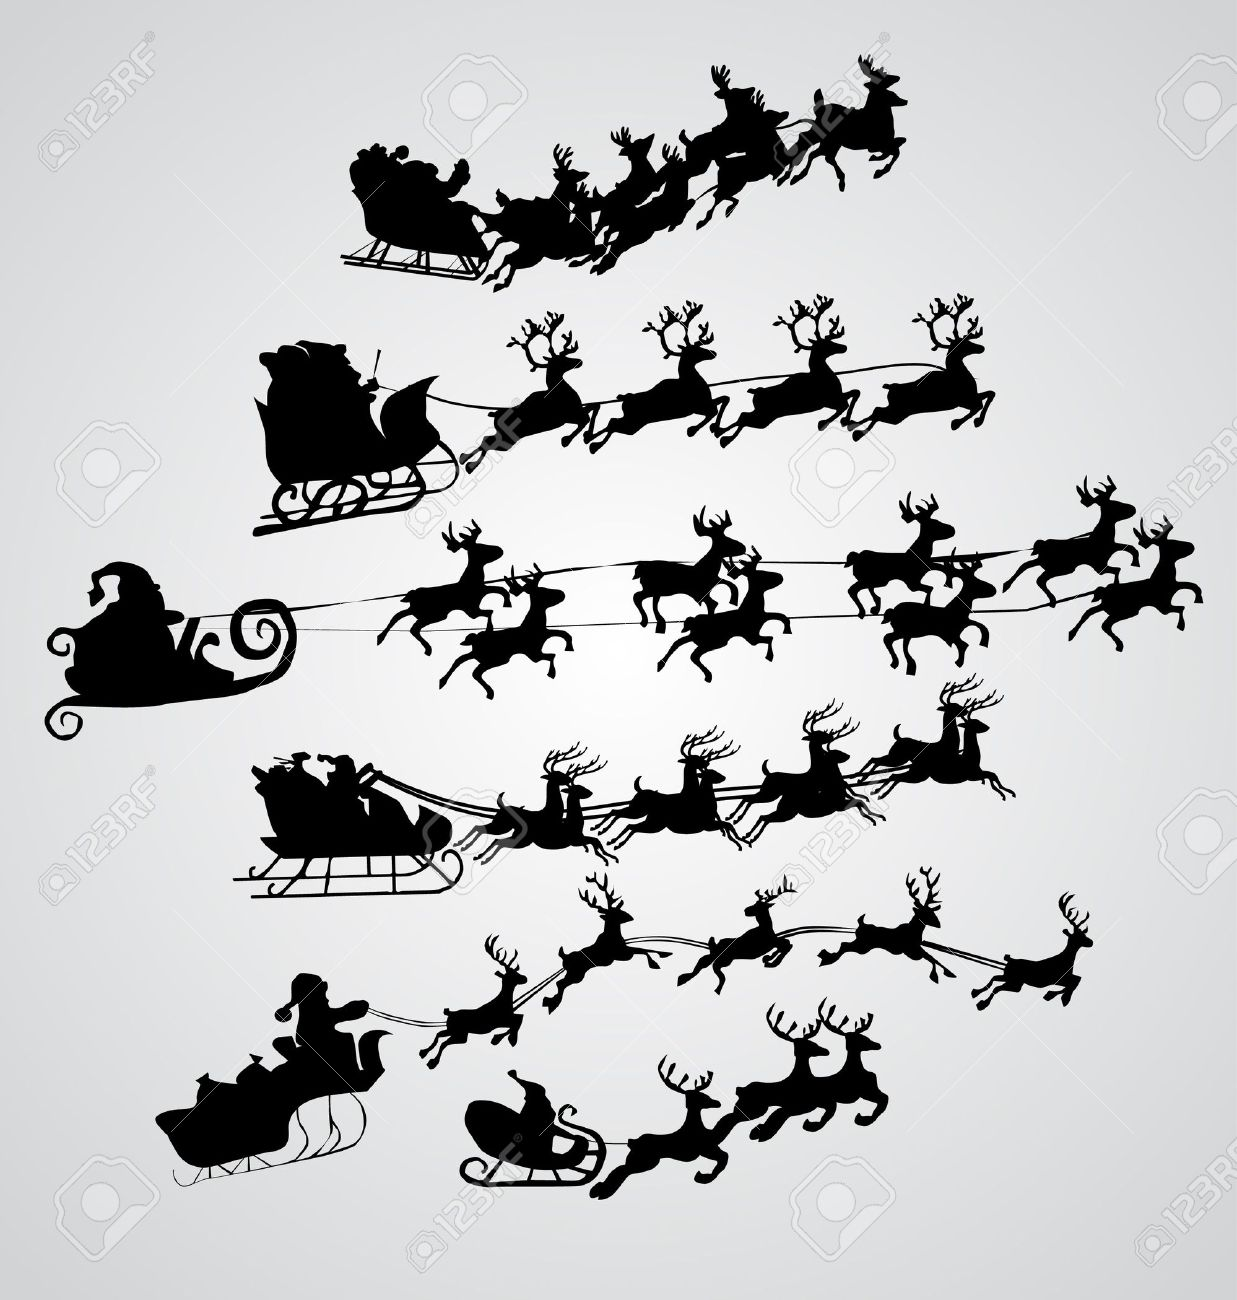 Silhouette Illustration of Flying Santa and Christmas Reindeer Stock Vector - 8974234